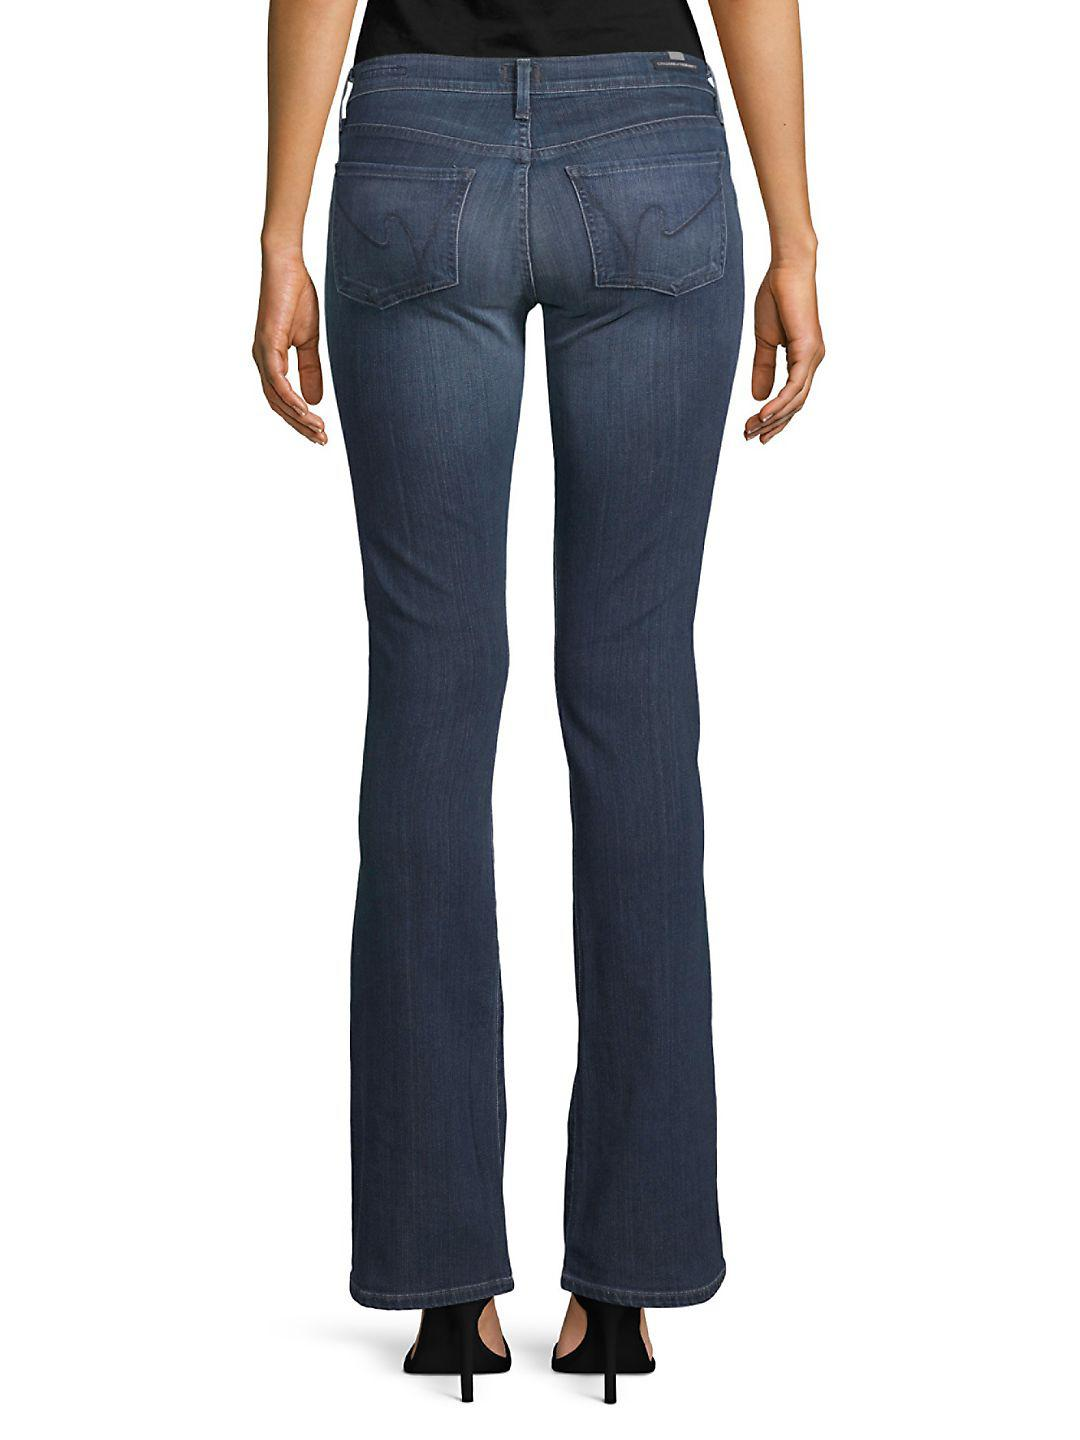 Citizens of Humanity Denim Emannuelle Boot-cut Jeans in Blue